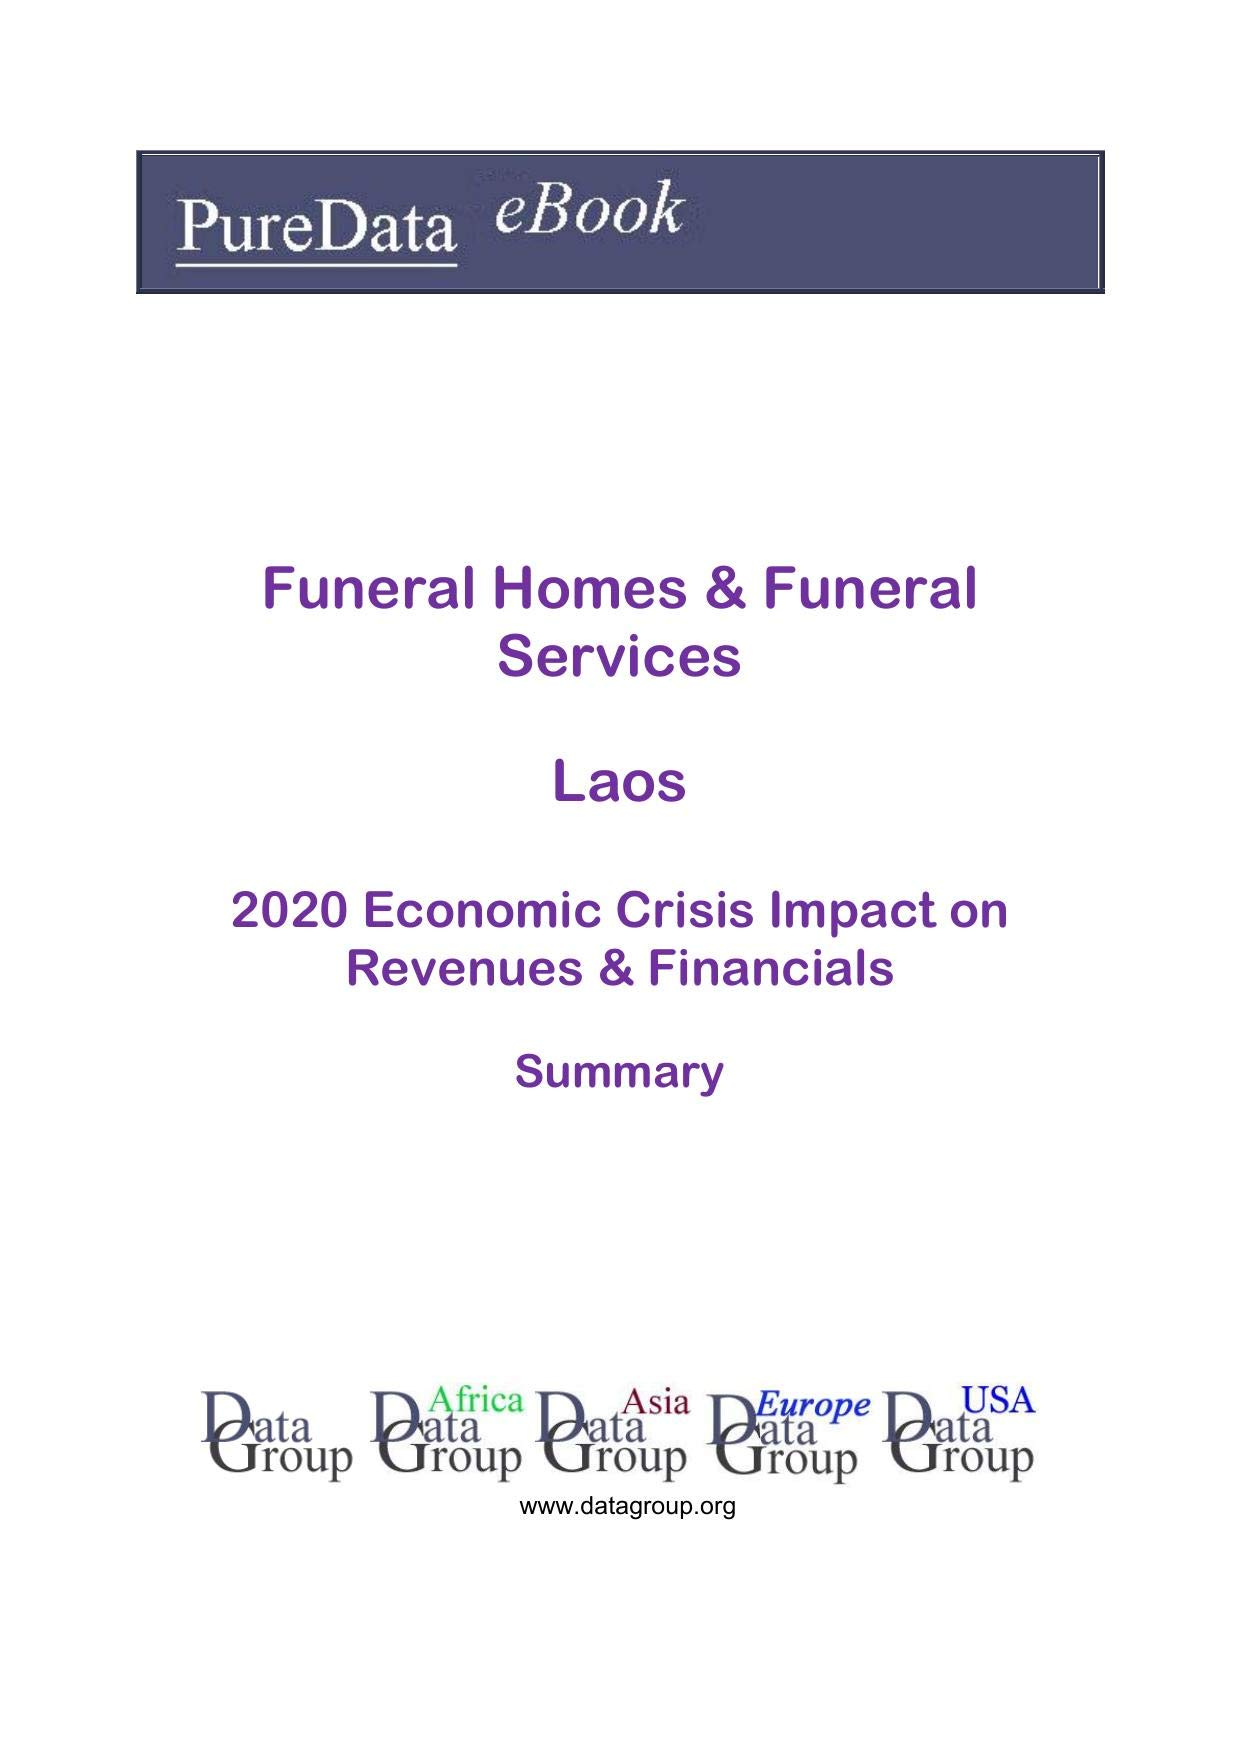 Funeral Homes & Funeral Services Laos Summary: 2020 Economic Crisis Impact on Revenues & Financials